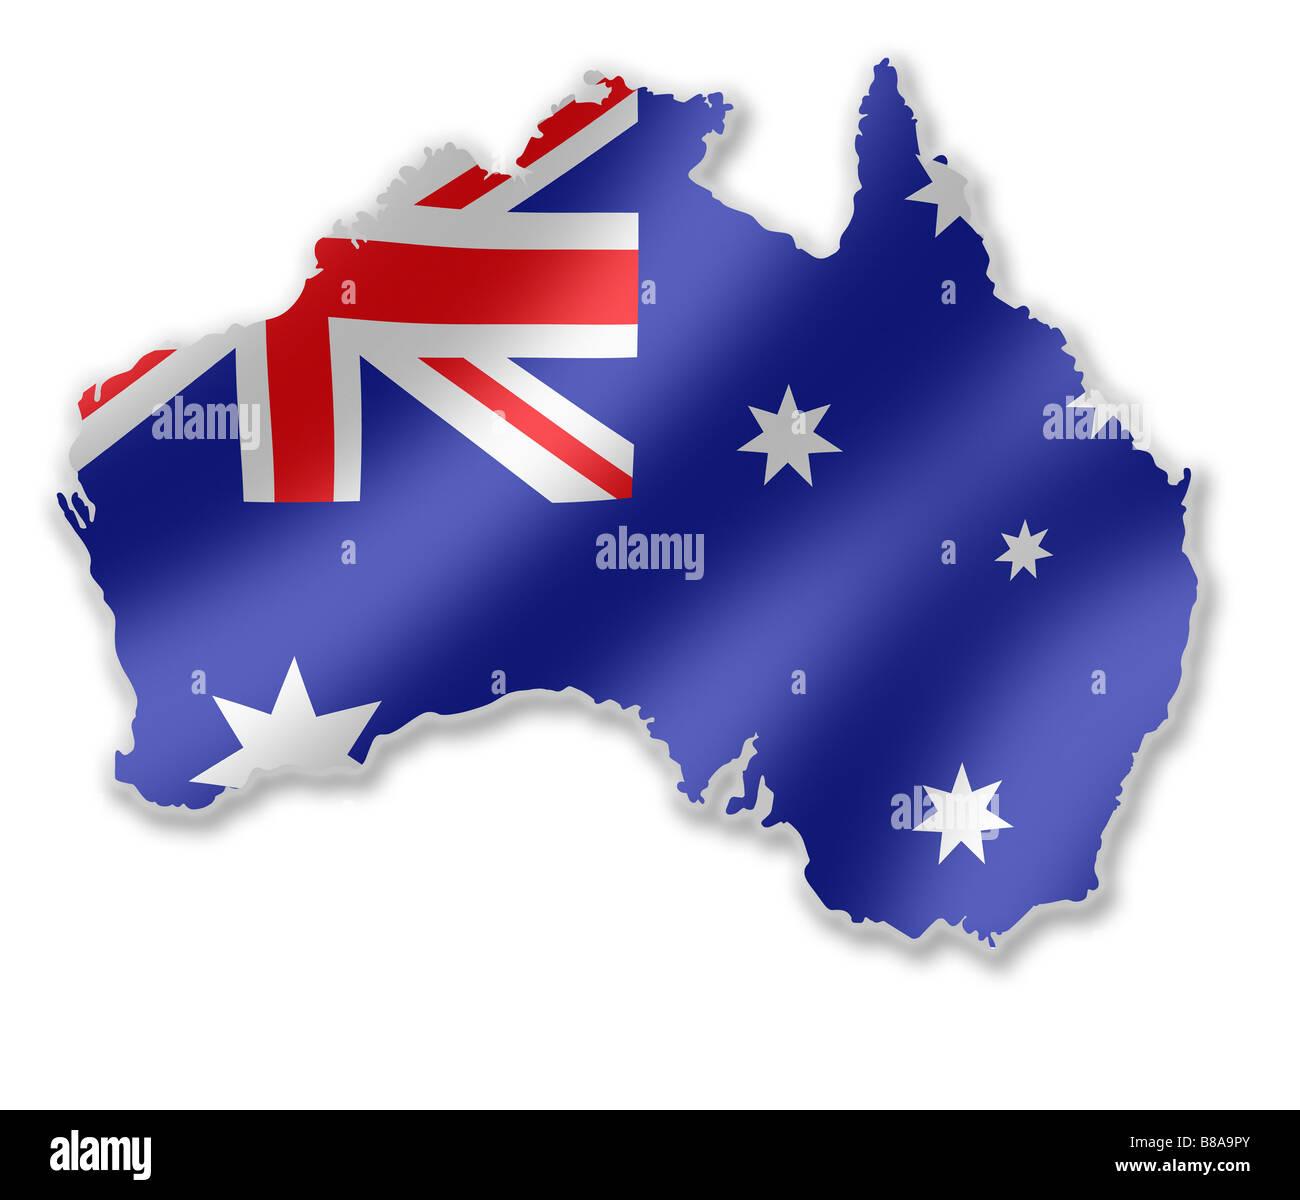 Australia australian country map outline with national flag inside australia australian country map outline with national flag inside gumiabroncs Images